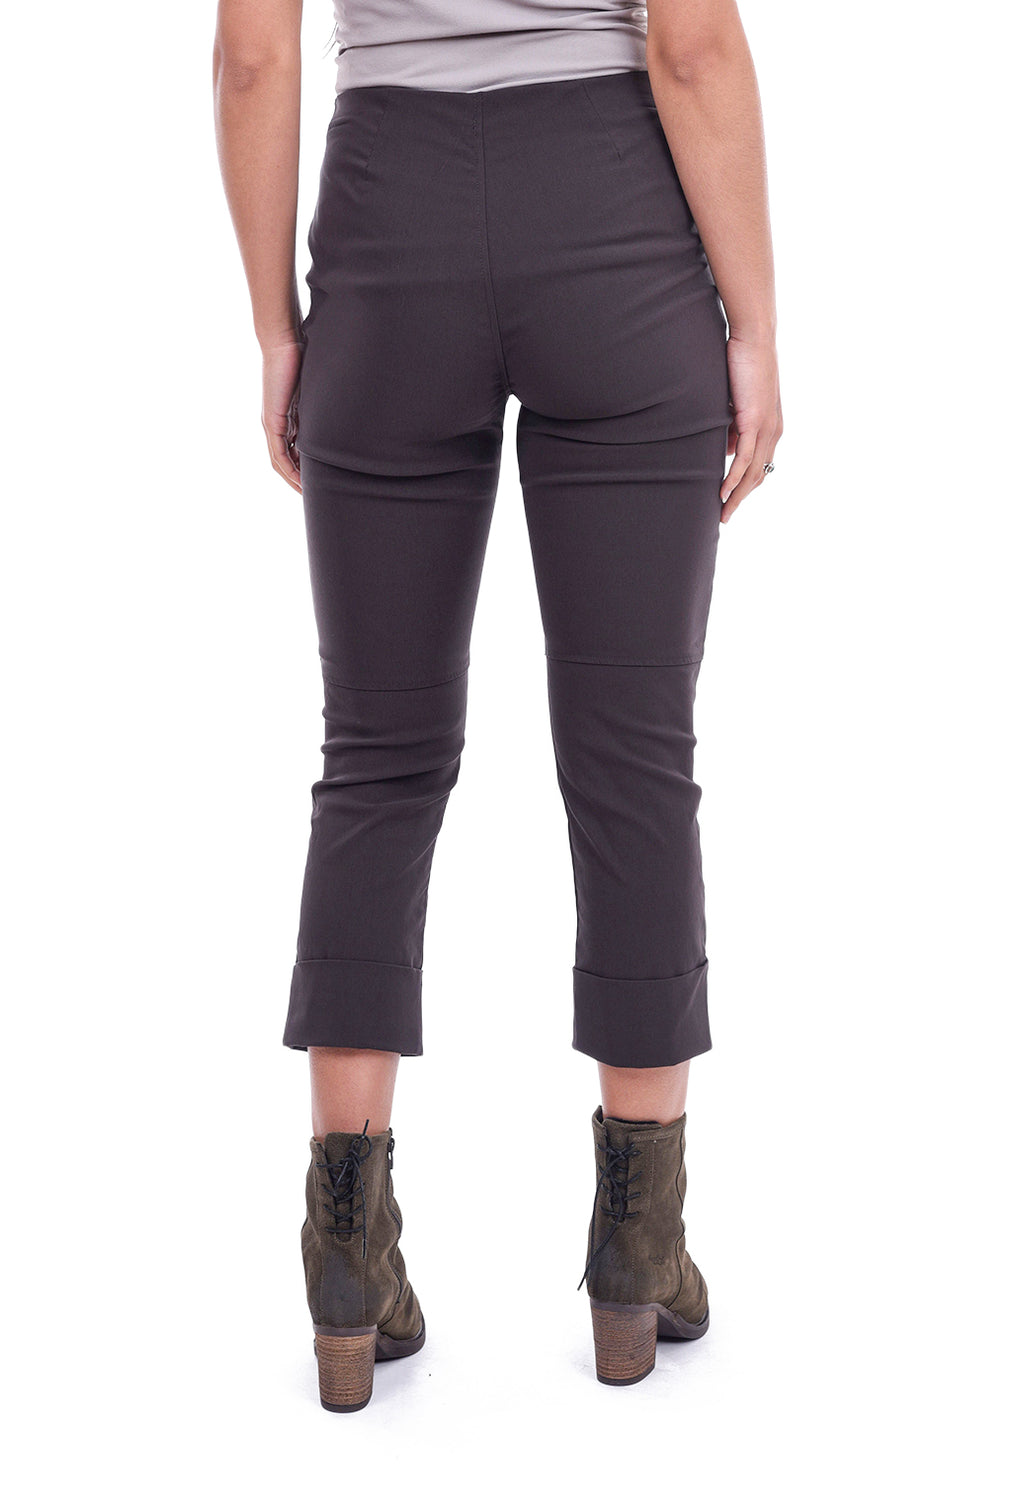 Porto New Vespa Pants, Java Brown